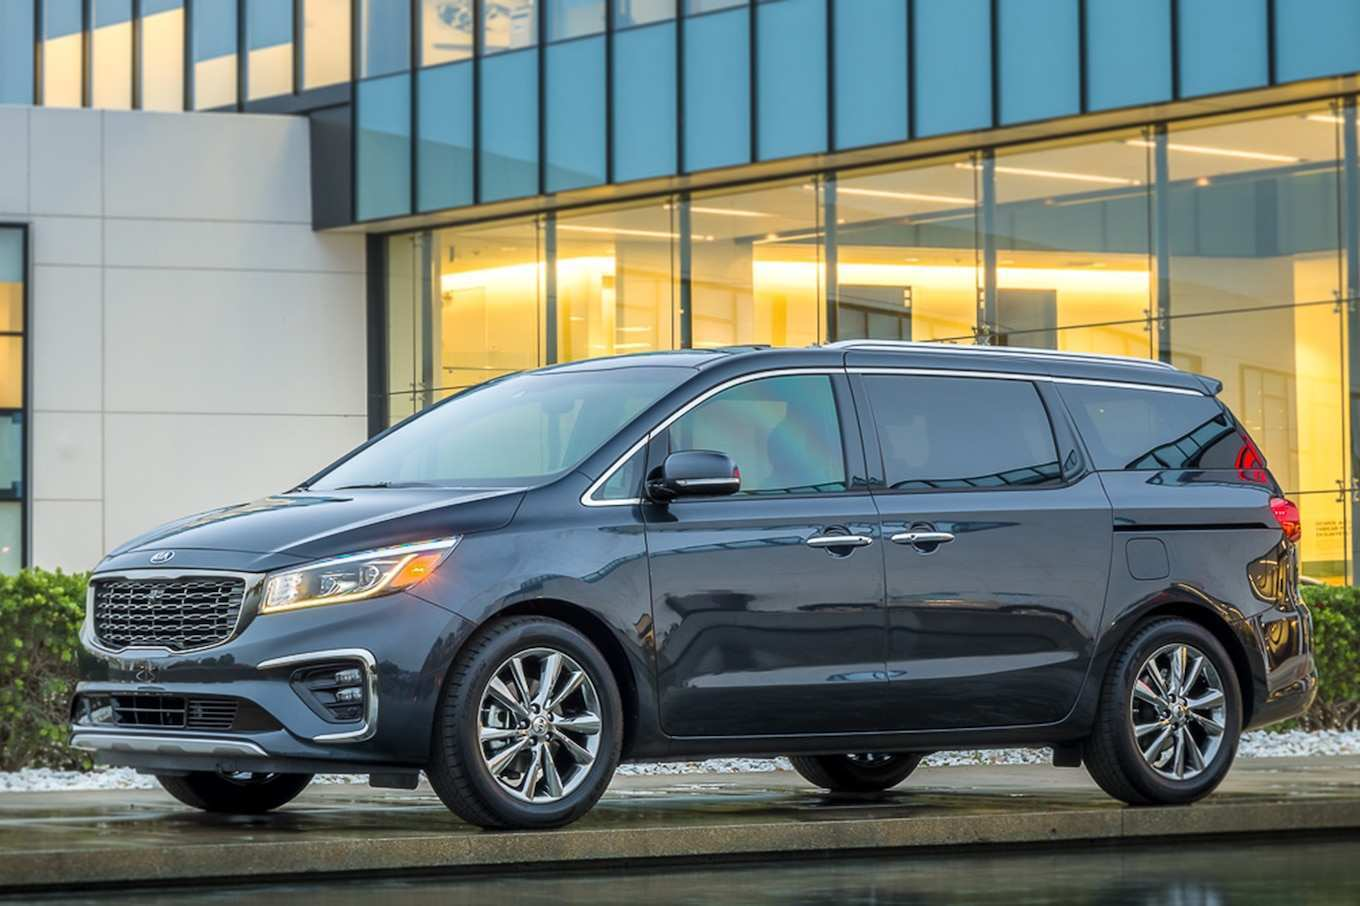 30 New 2020 Kia Sedona Release Date Model